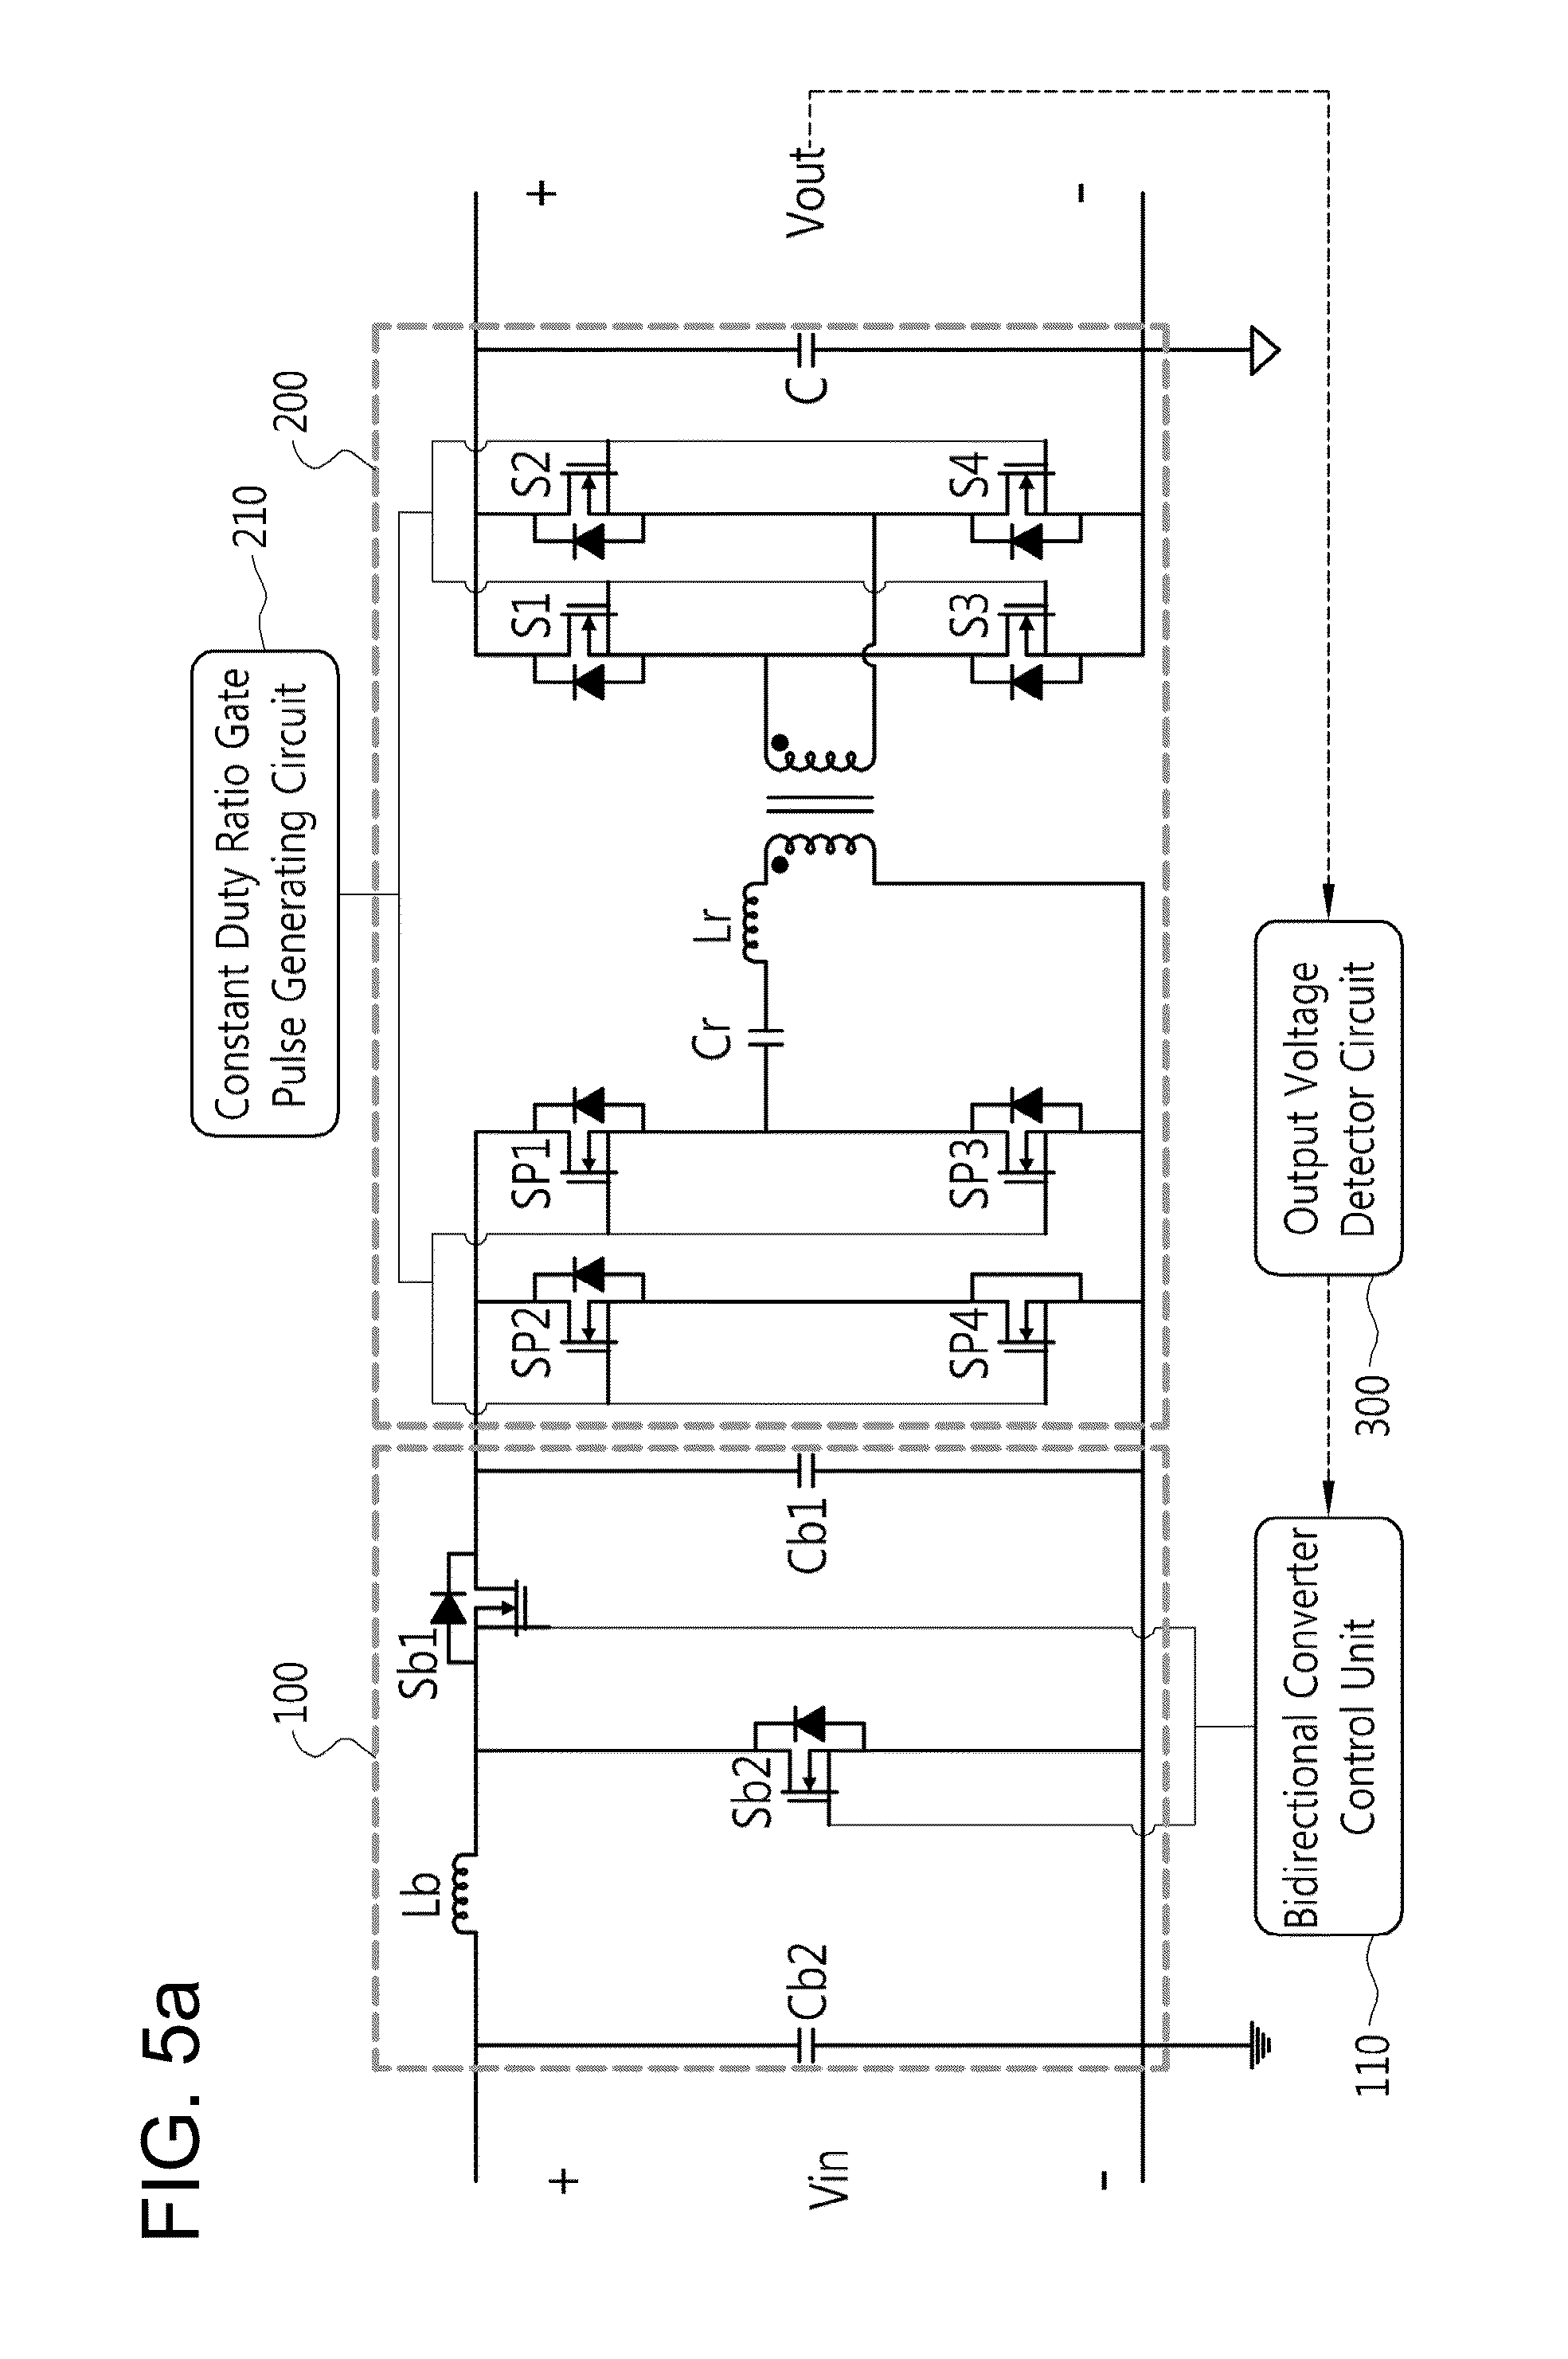 Patent Us8467199 Two Stage Insulated Bidirectional Dc Power Inverter Is Circuit Diagram Electronic Circuits Drawing